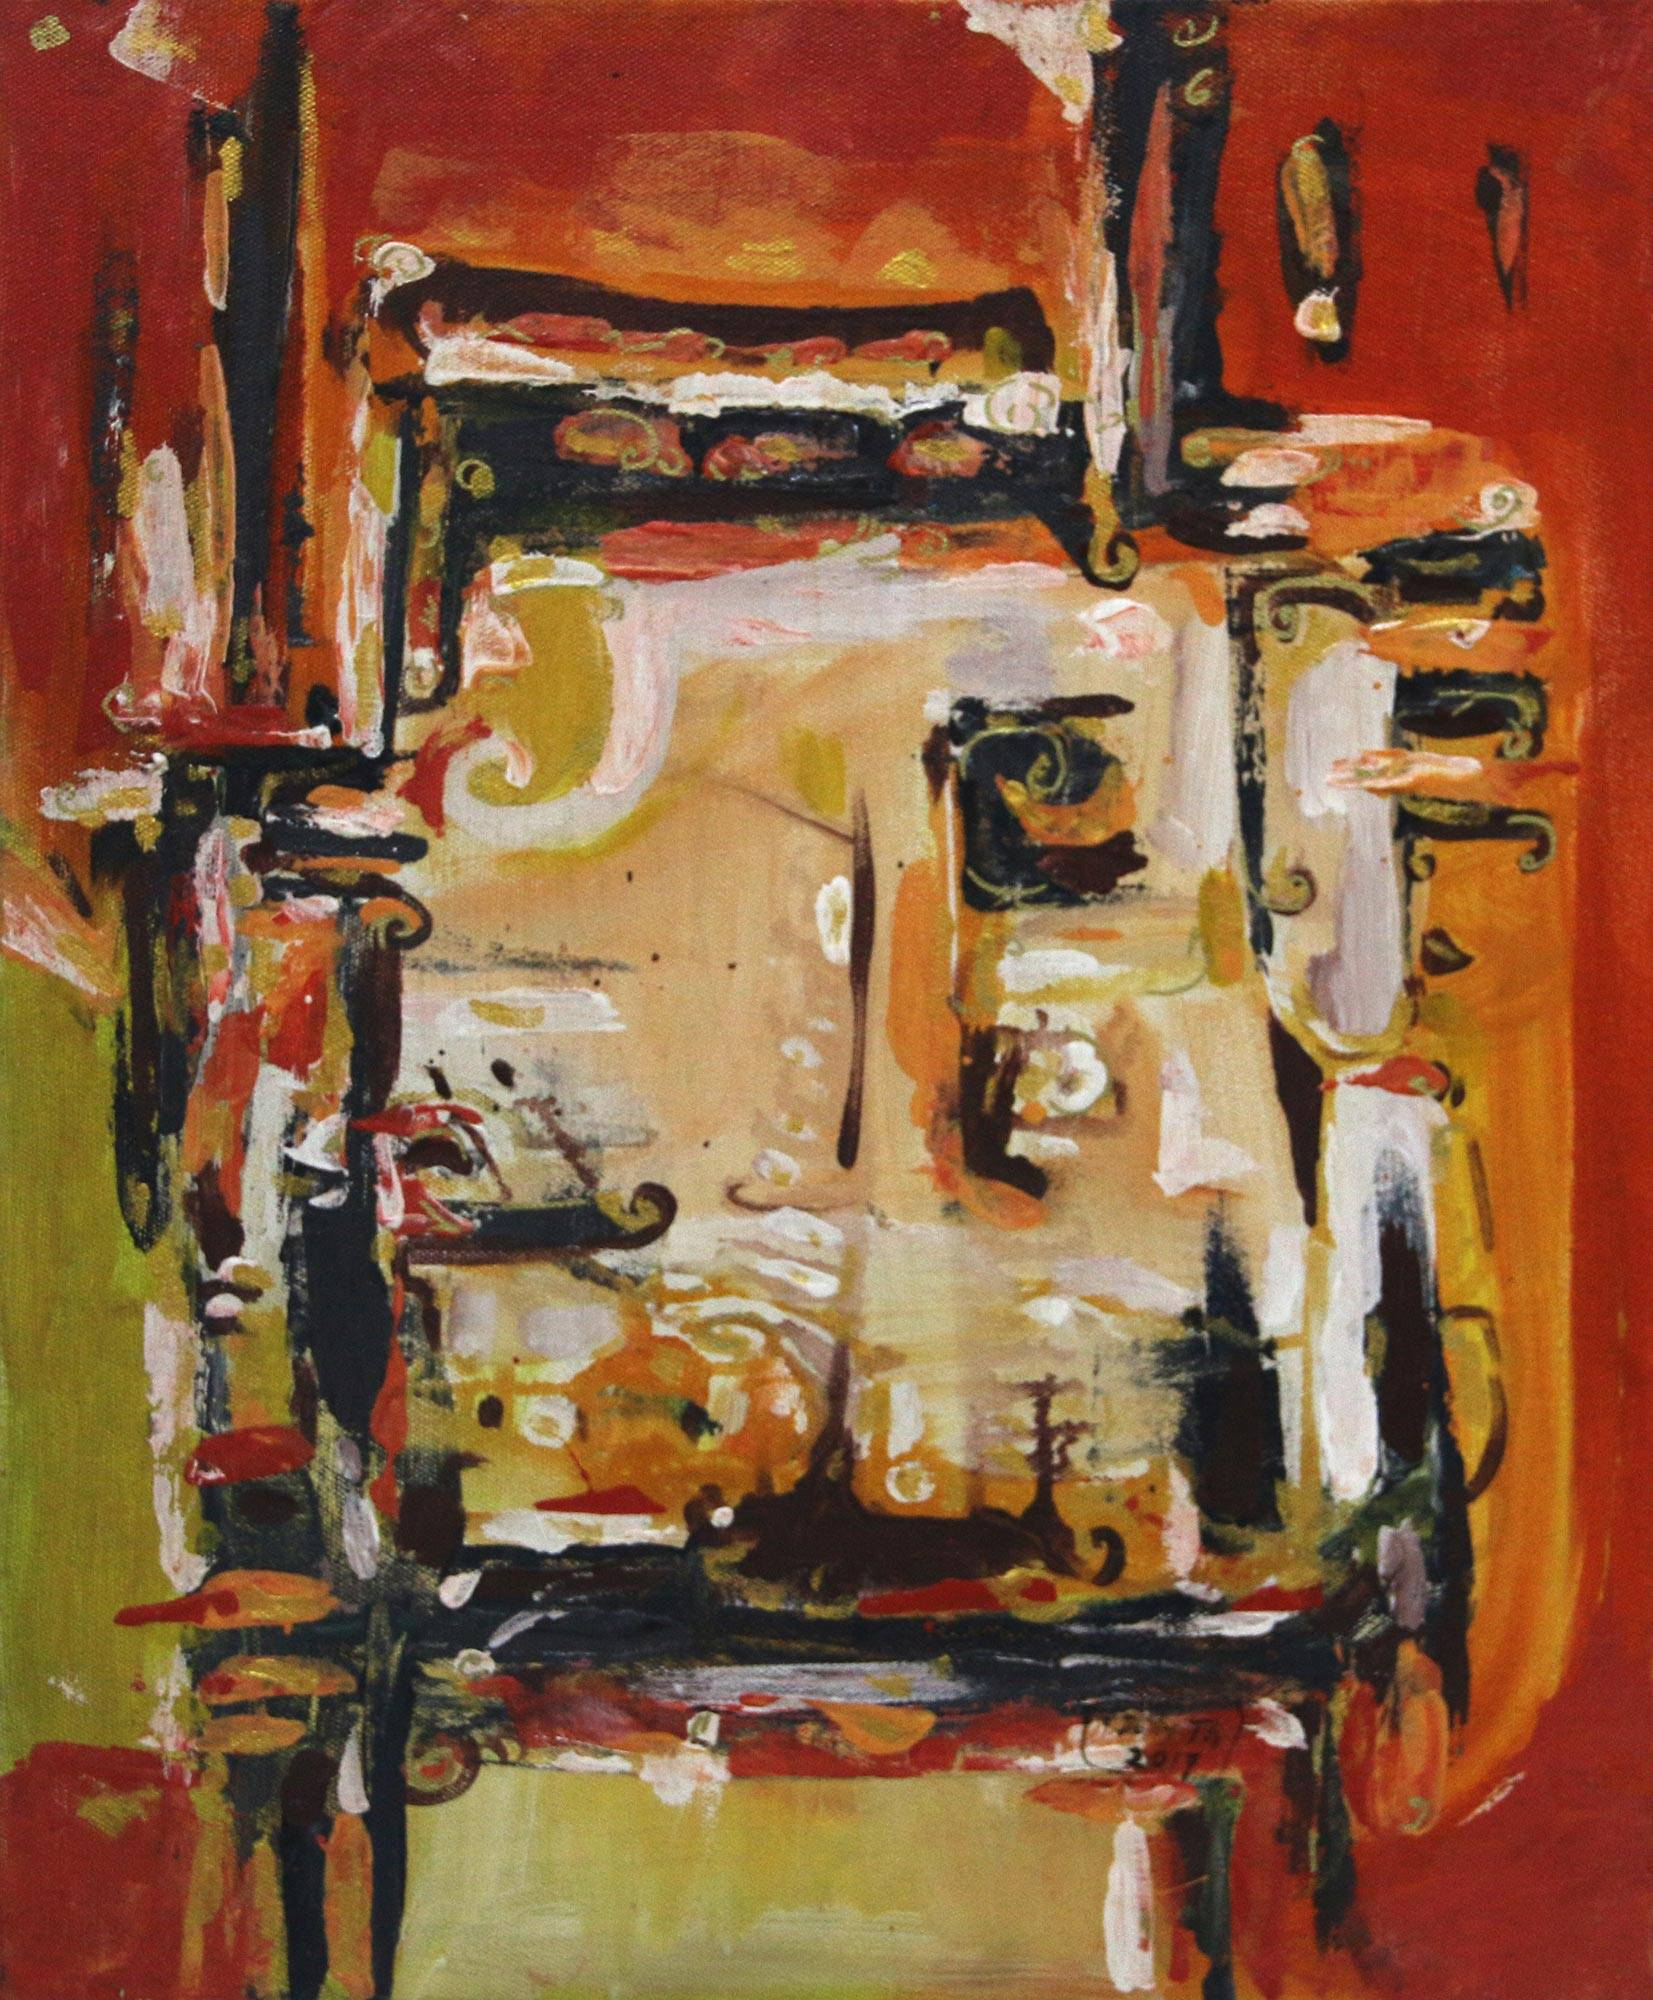 'Spirit' - Signed Abstract Painting in Orange from Indonesia